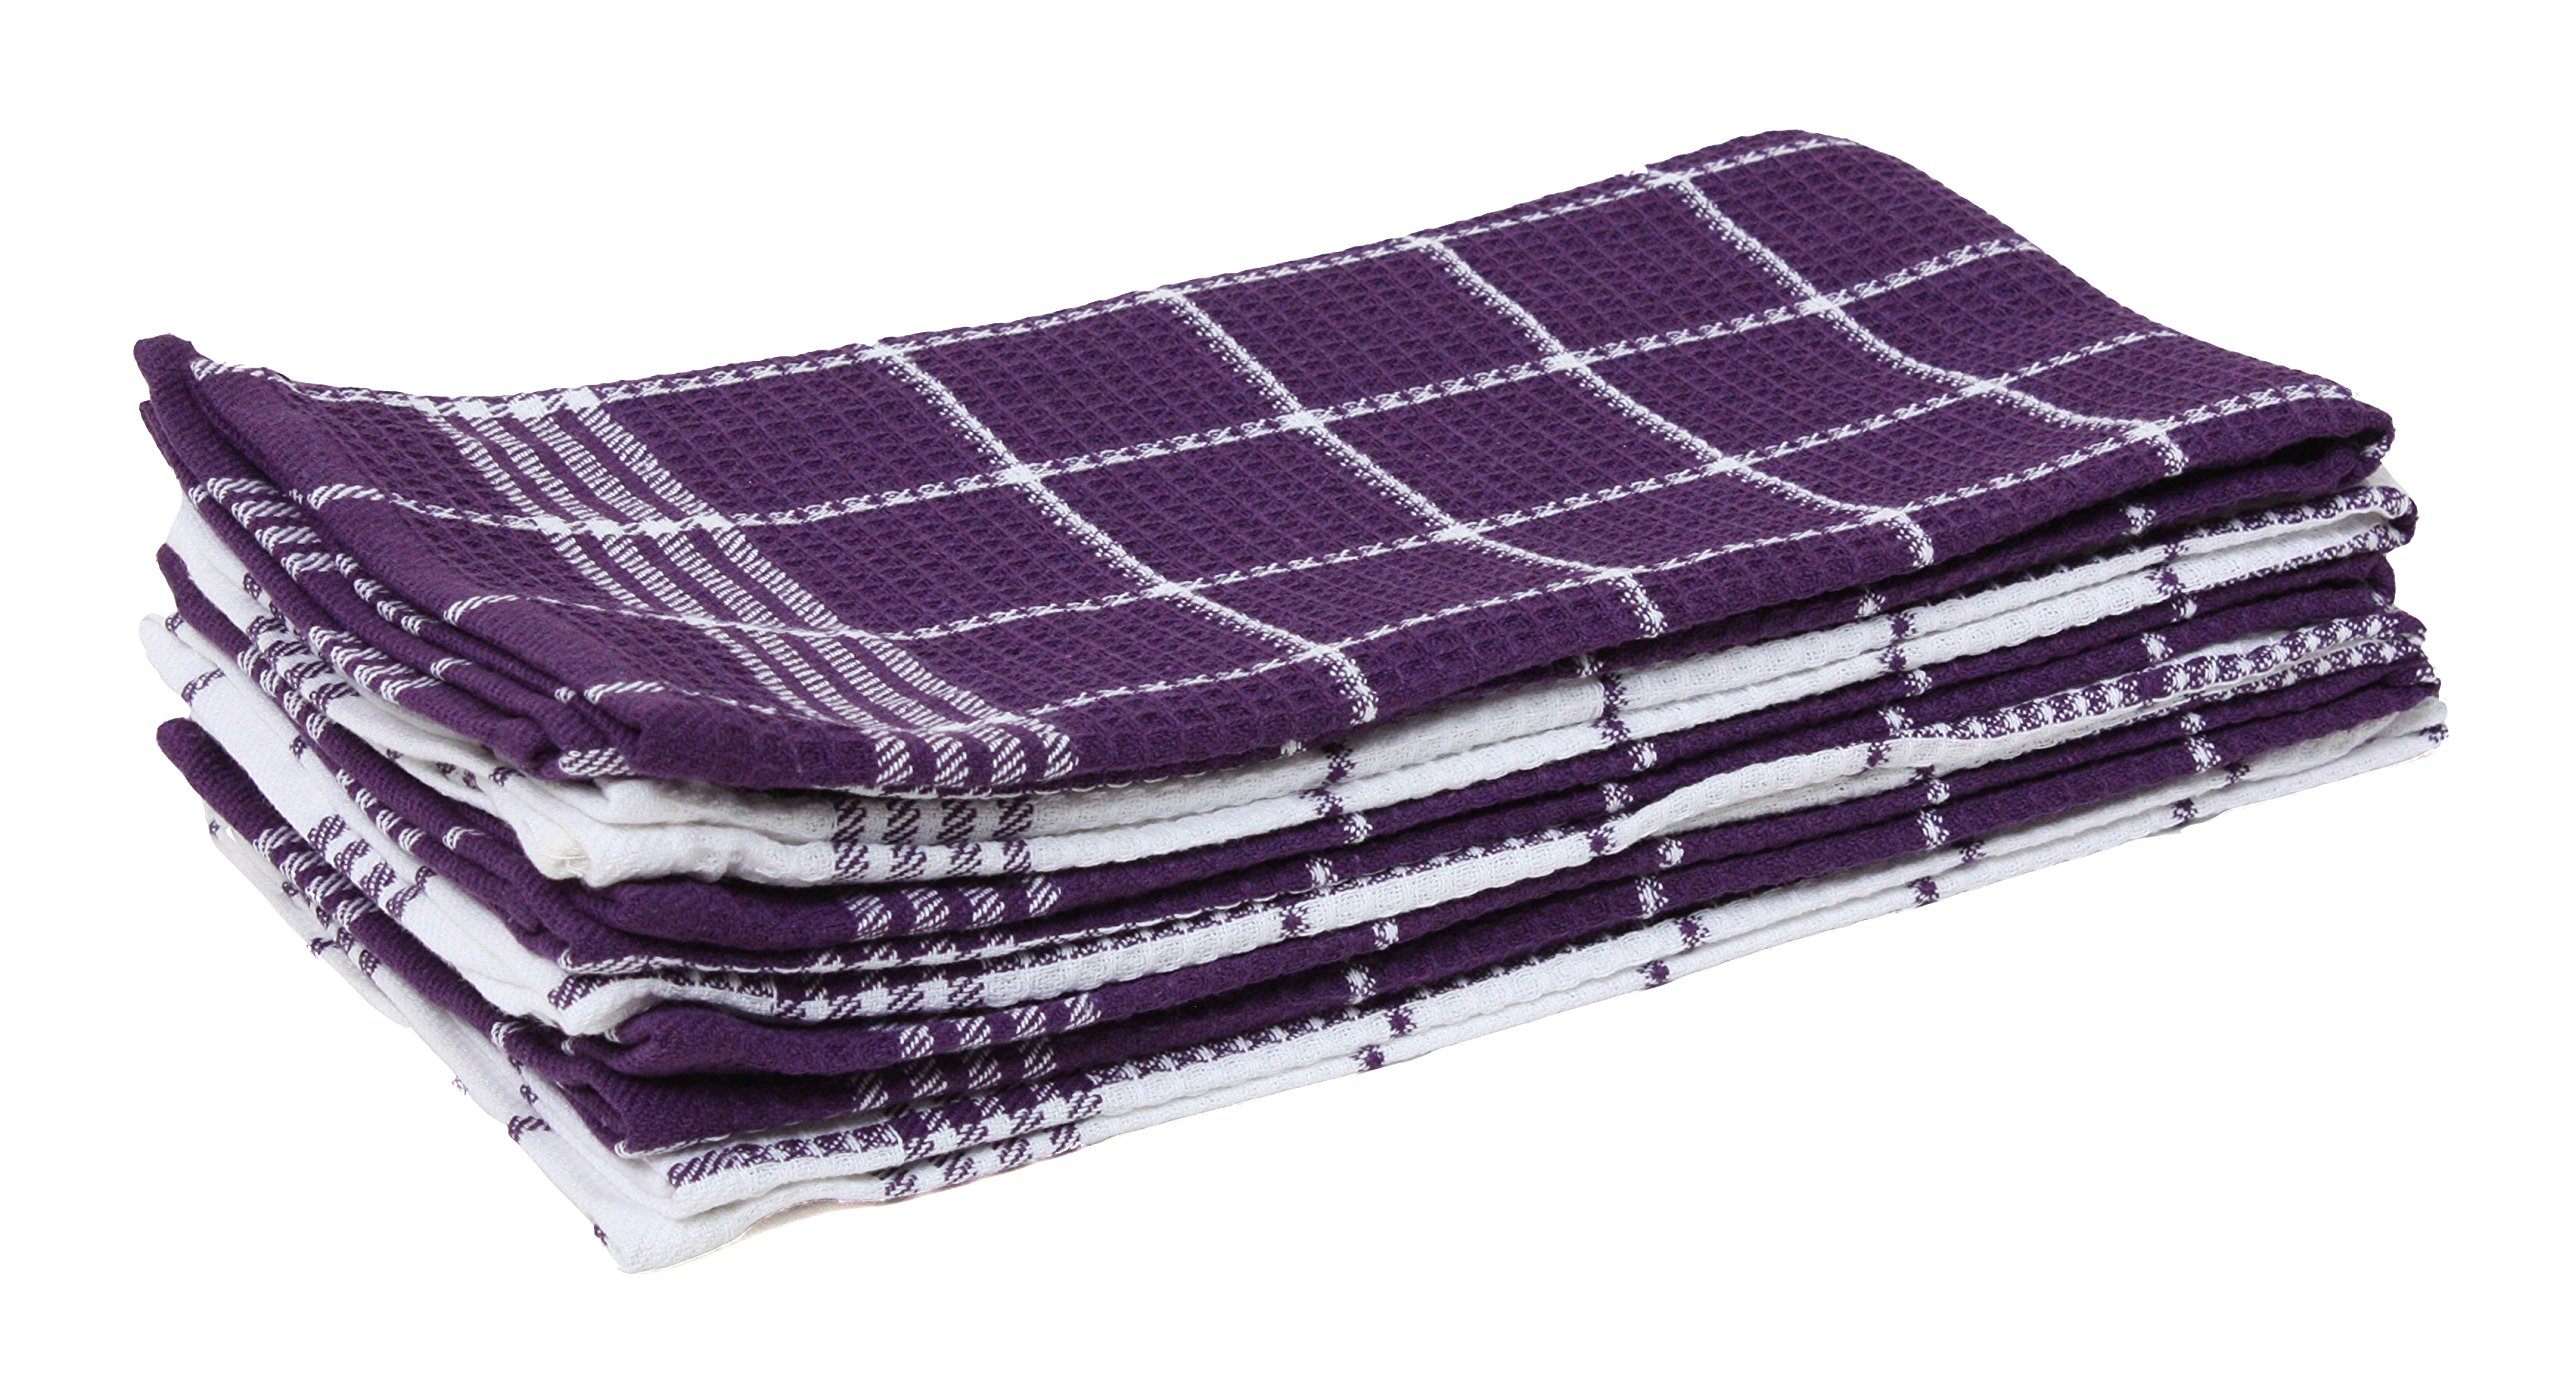 J&M Home Fashions Cotton Waffle Checkered Terry Dish Towels, 18x25 Set of 6, Absorbent Durable Drying Cleaning Kitchen Towels-Eggplant Purple/White